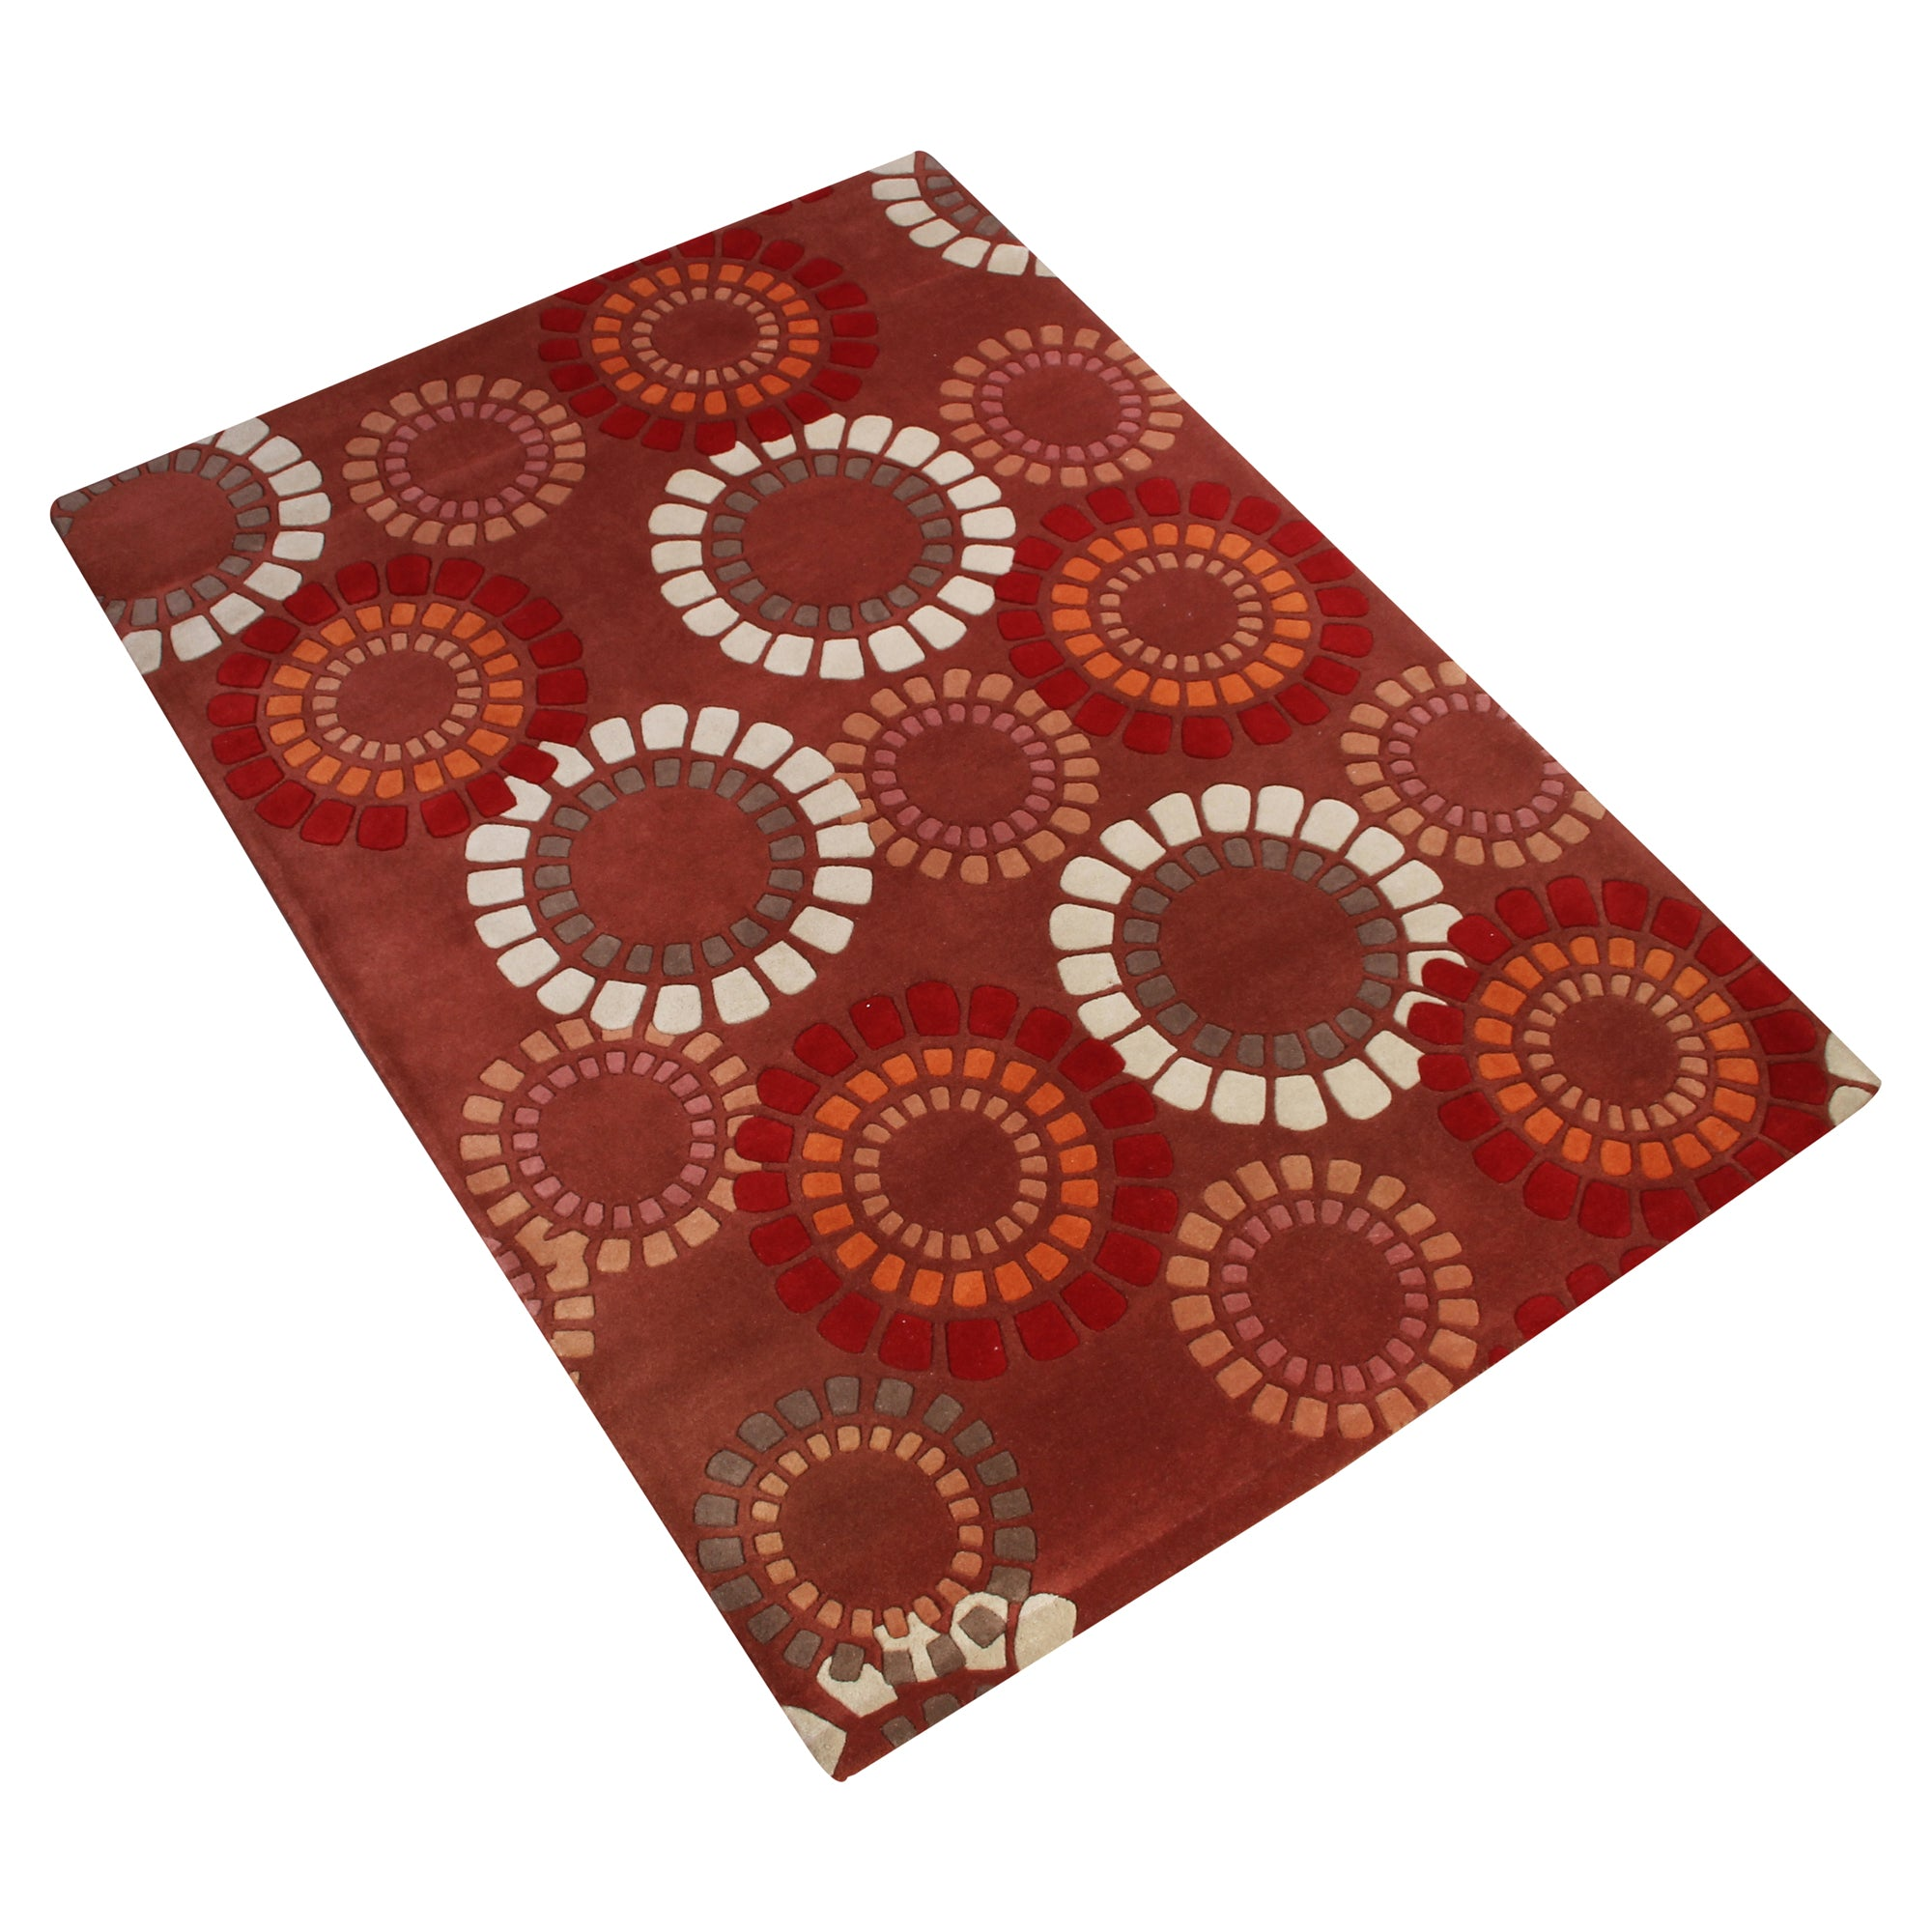 BROWN RUST MULTI COLOR FLORAL GEOMETRIC HAND TUFTED RUG